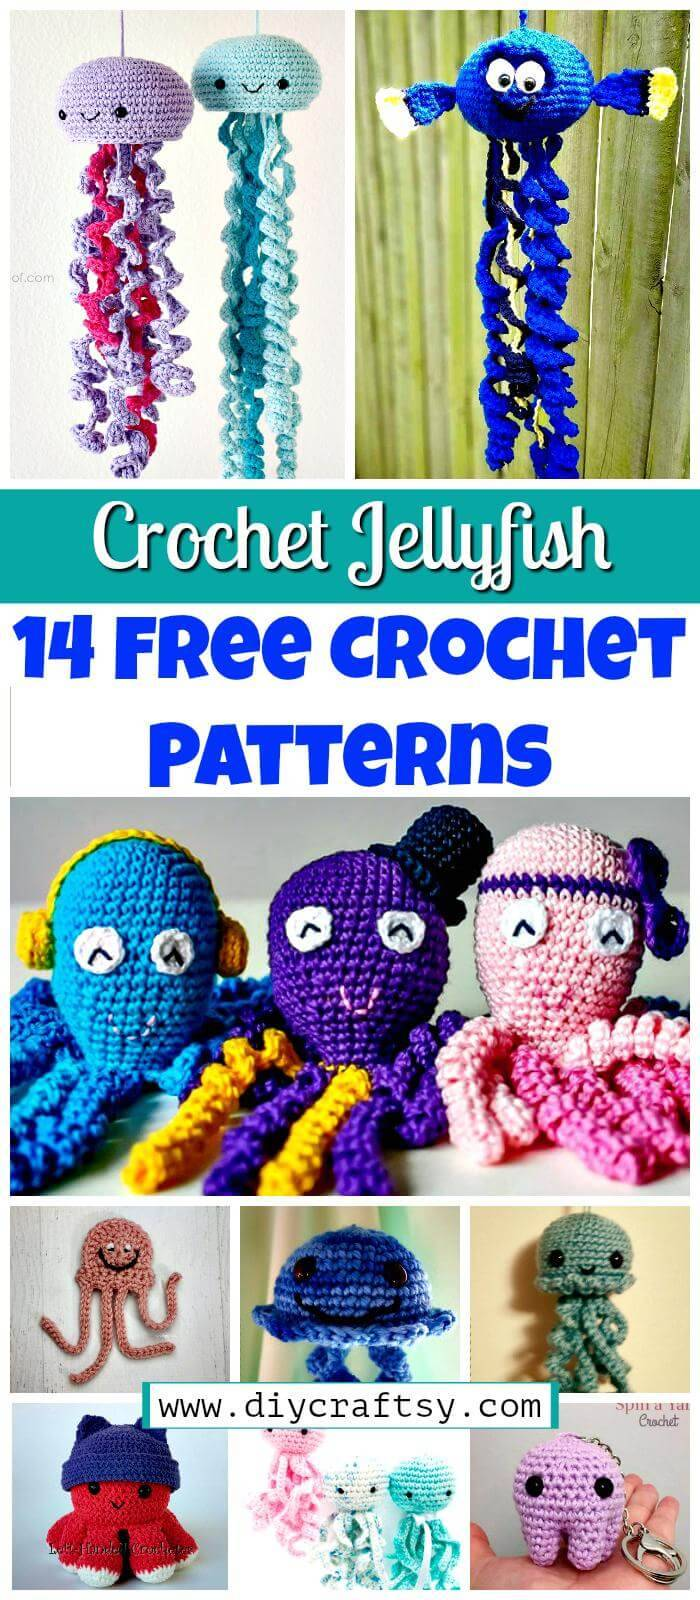 Crochet Jellyfish - 14 Free Crochet Patterns - Free Jellyfish Patterns